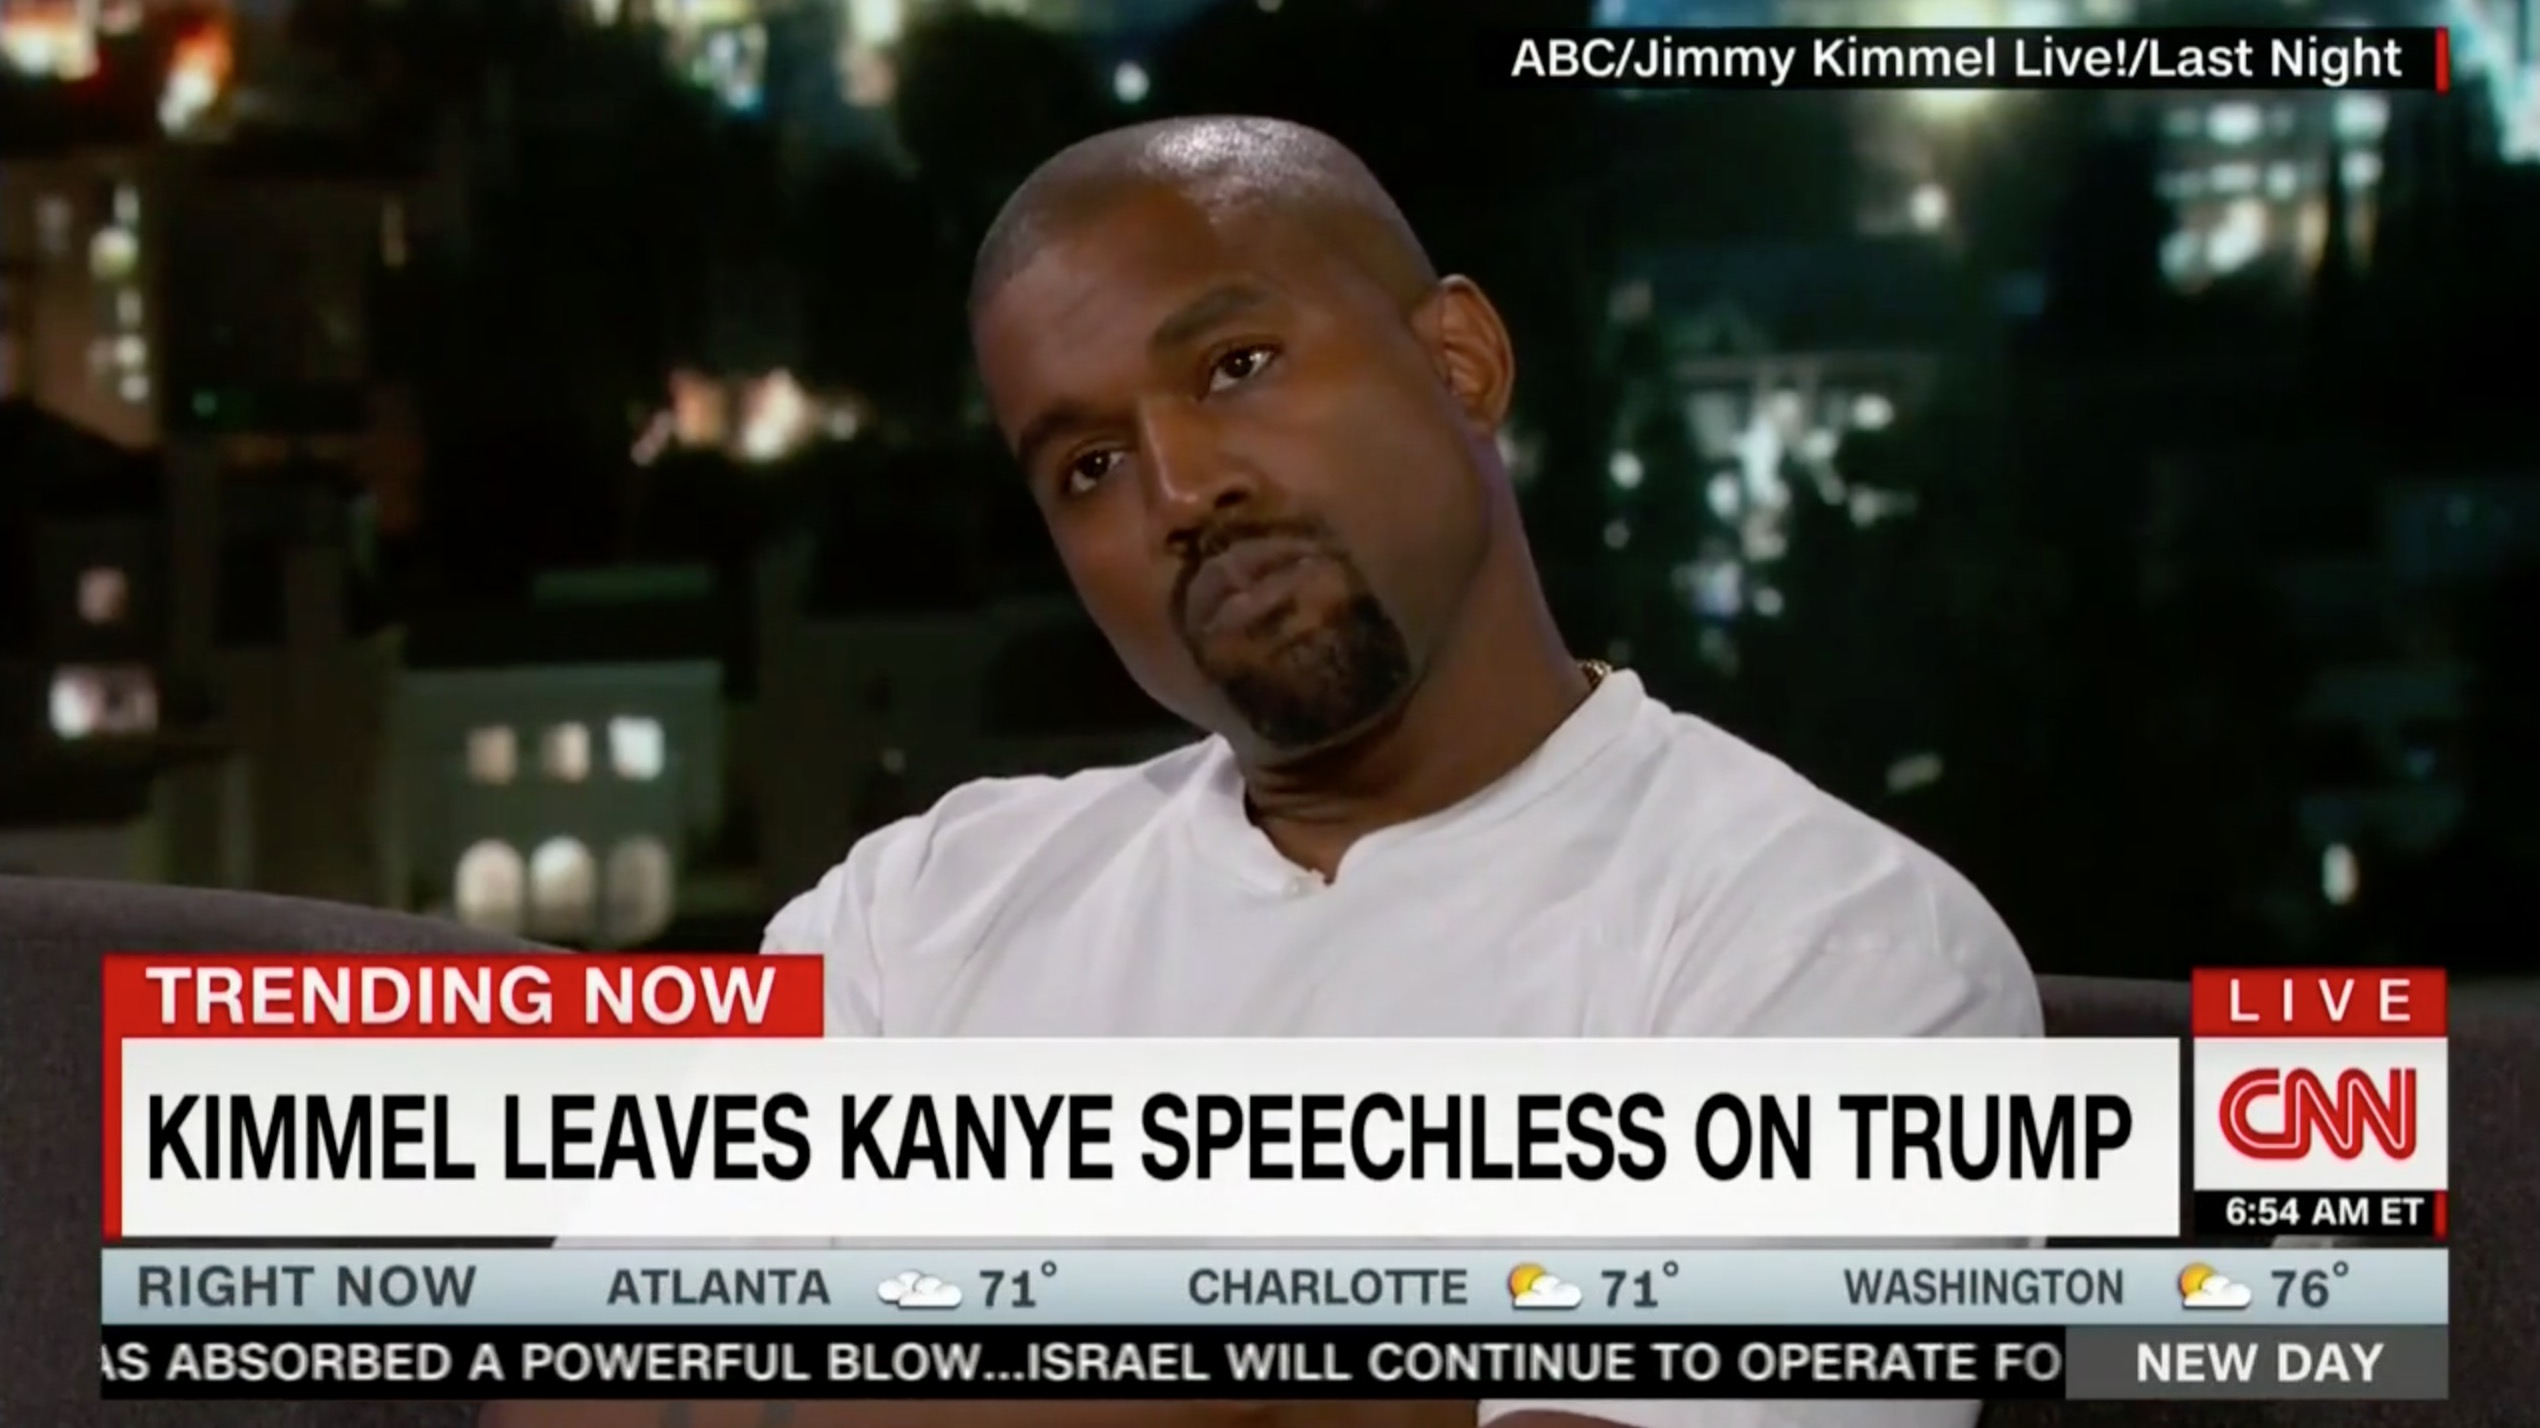 Kimmel Leaves Kanye West Speechless By Asking if Trump Cares About Black People